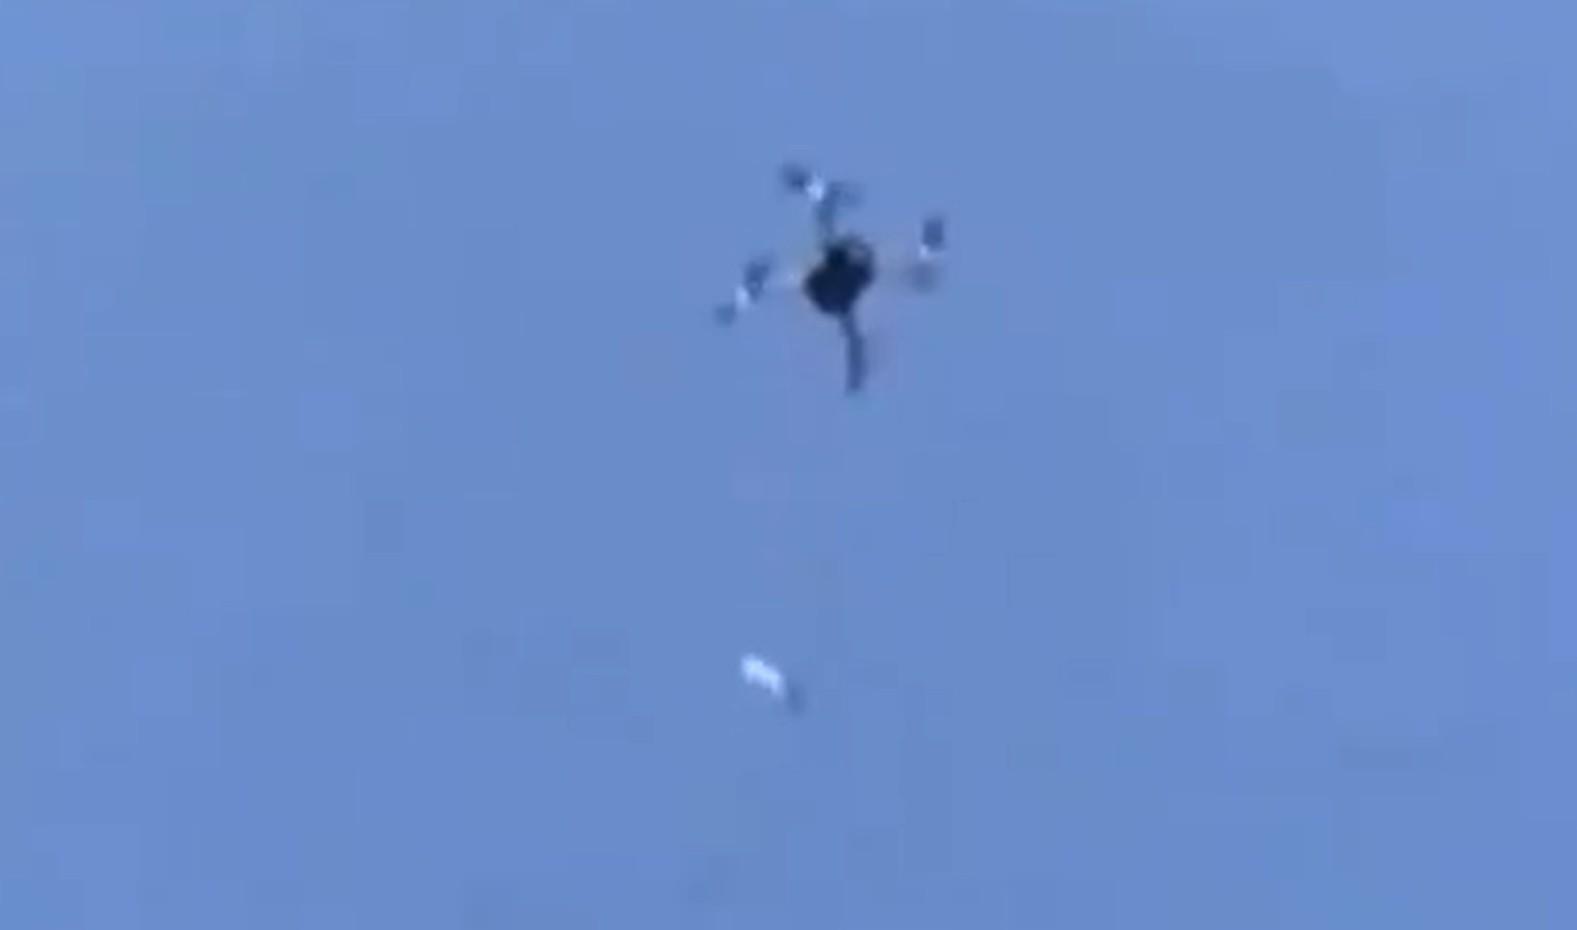 Israeli Drones Dropping Mini-Nukes, 2019 VT Exclusive Now Key to Beirut Investigation